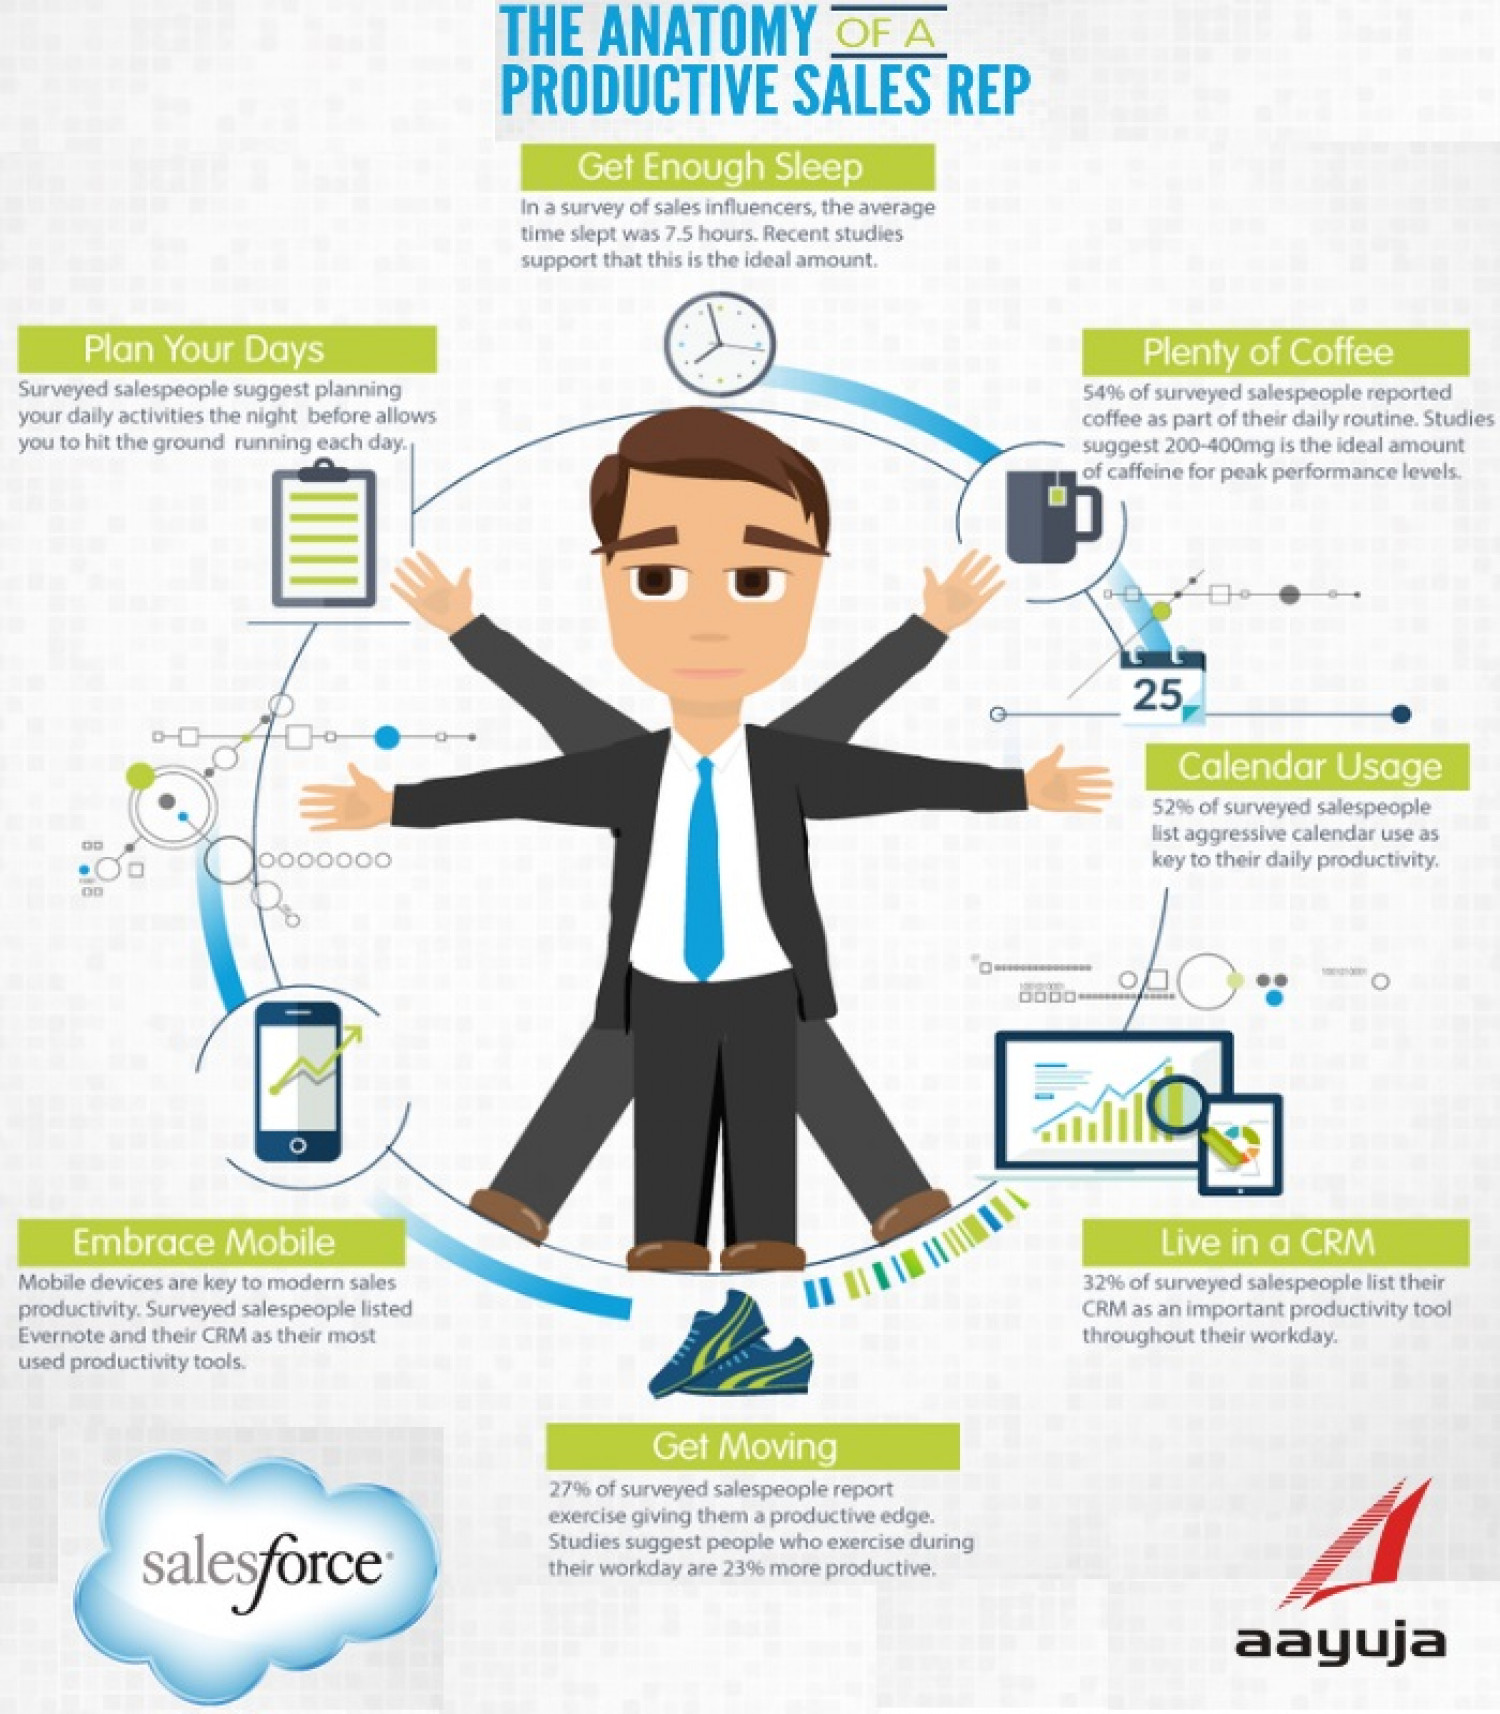 The Anatomy of a Productive Sales Rep Infographic